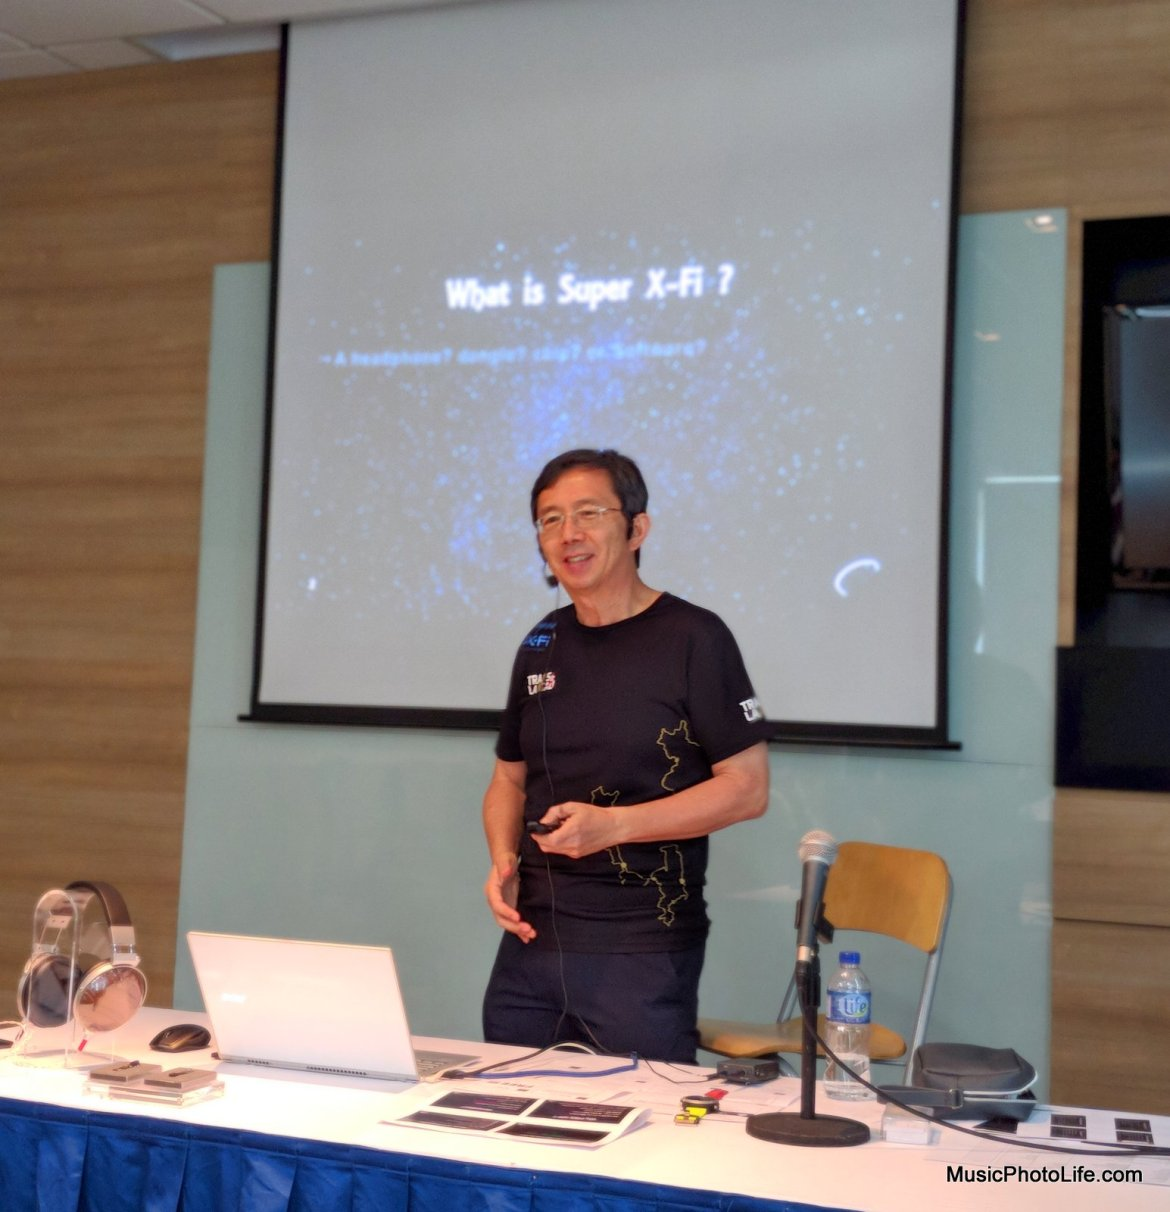 Mr Sim Wong Hoo presenting at Creative Super X-Fi demo event at Singapore 28 Feb 2018 Creative Office